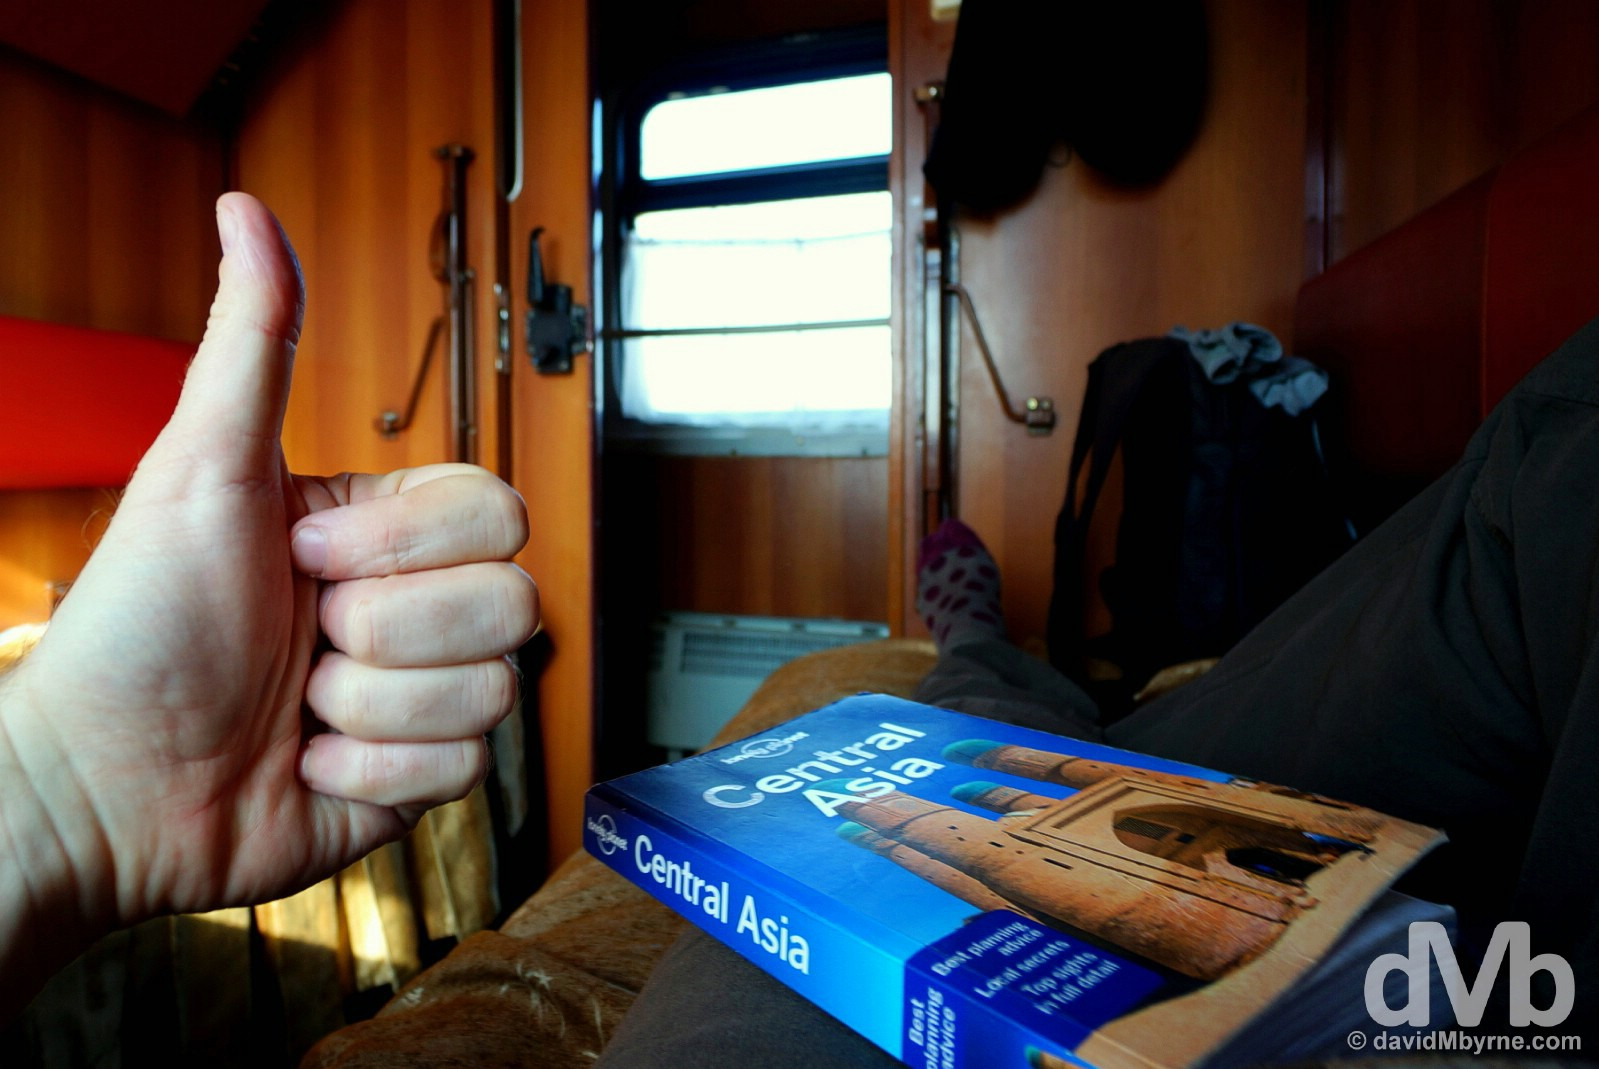 A big thumbs up to Central Asia on the overnight train from Urgench to Tashkent, Uzbekistan. March 17, 2015.